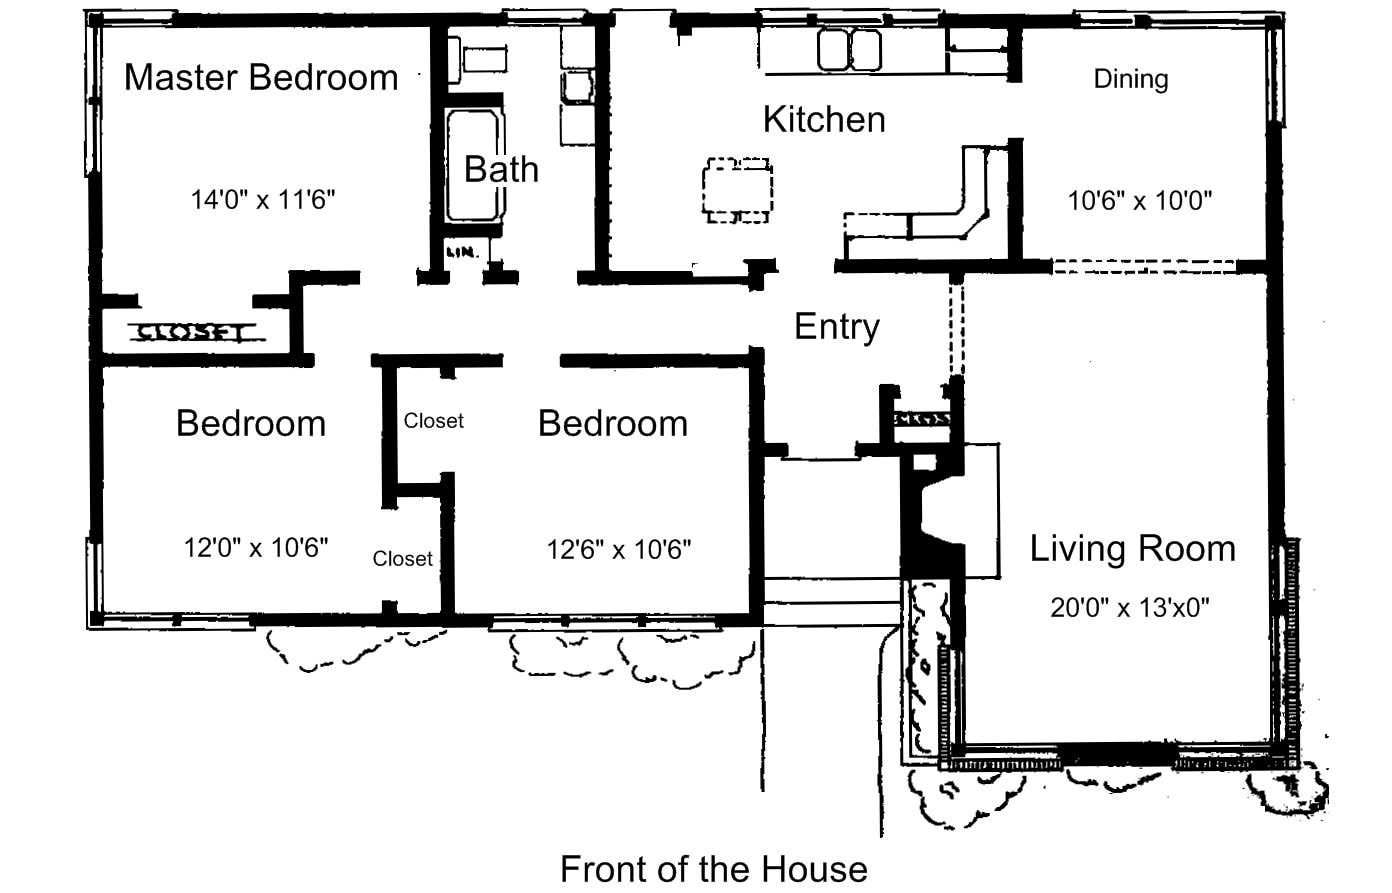 free floor plans for small houses - Small House Blueprints